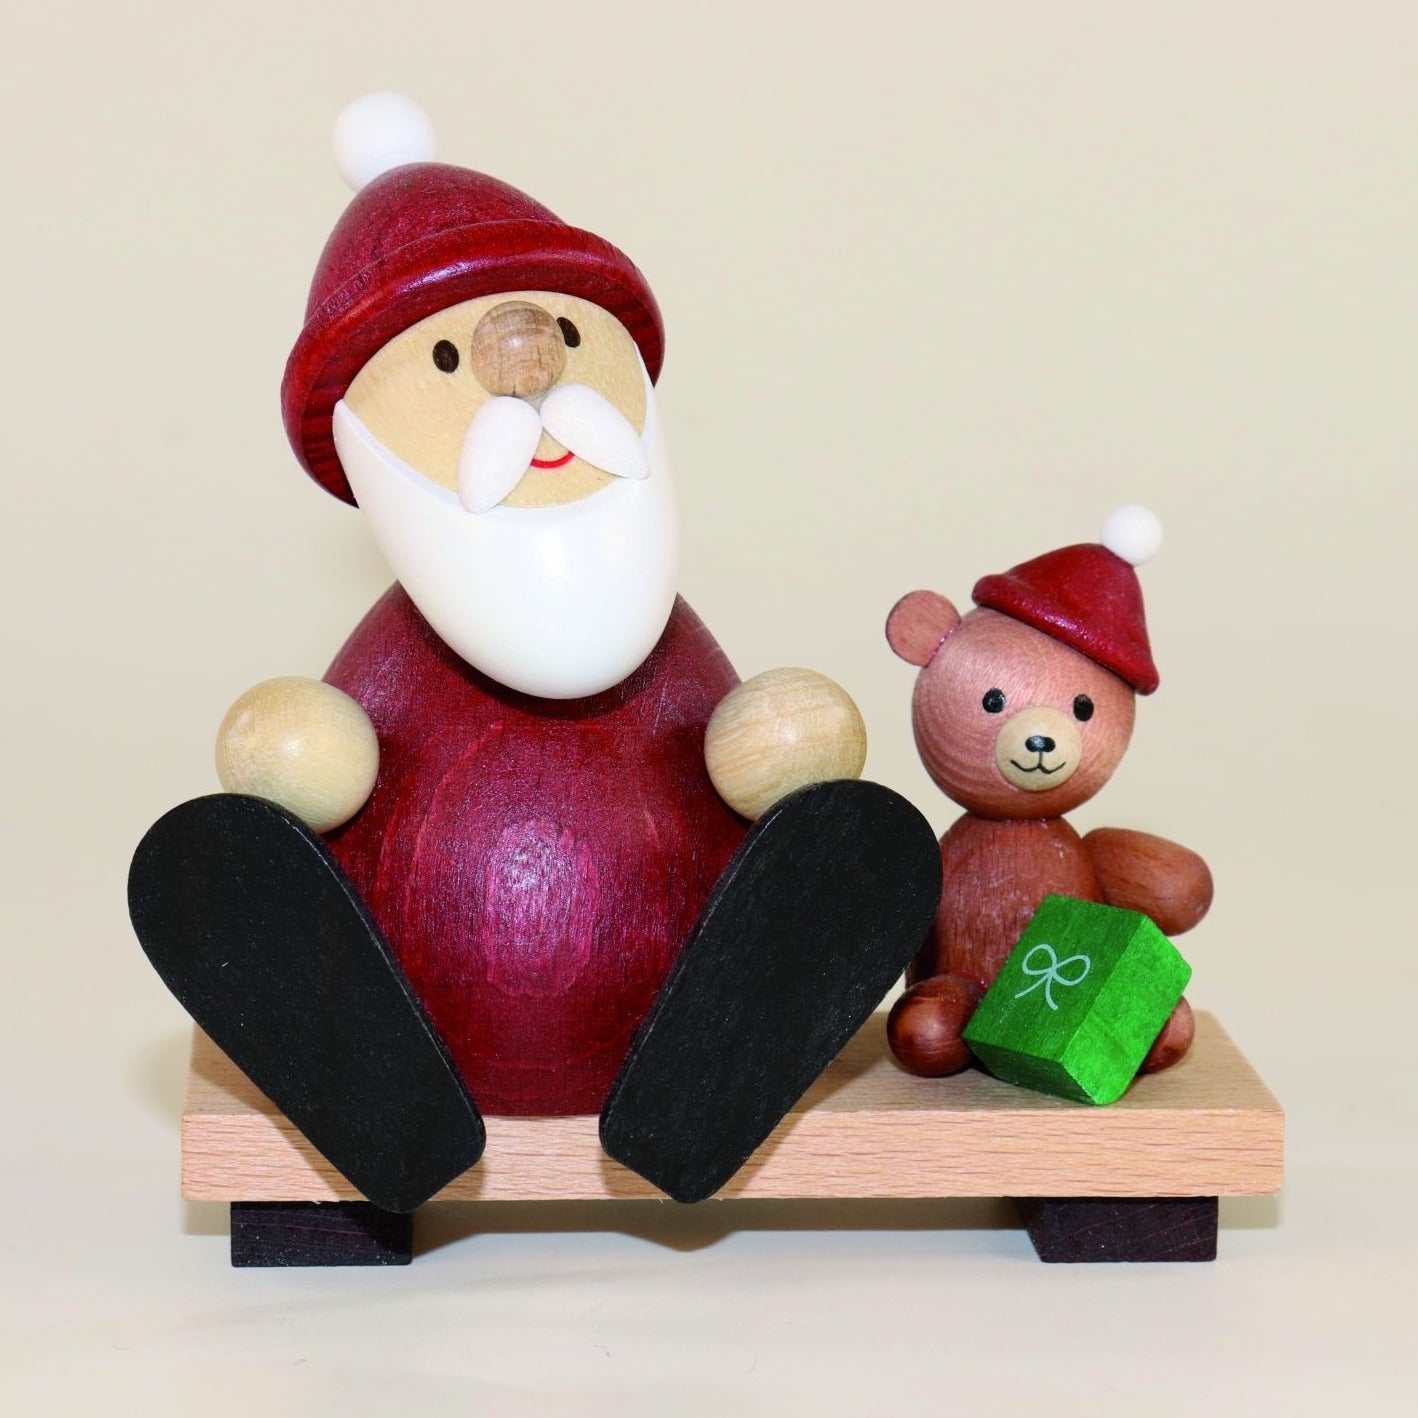 Weihnachtsmann Collectibles - Santa with Teddy Bear